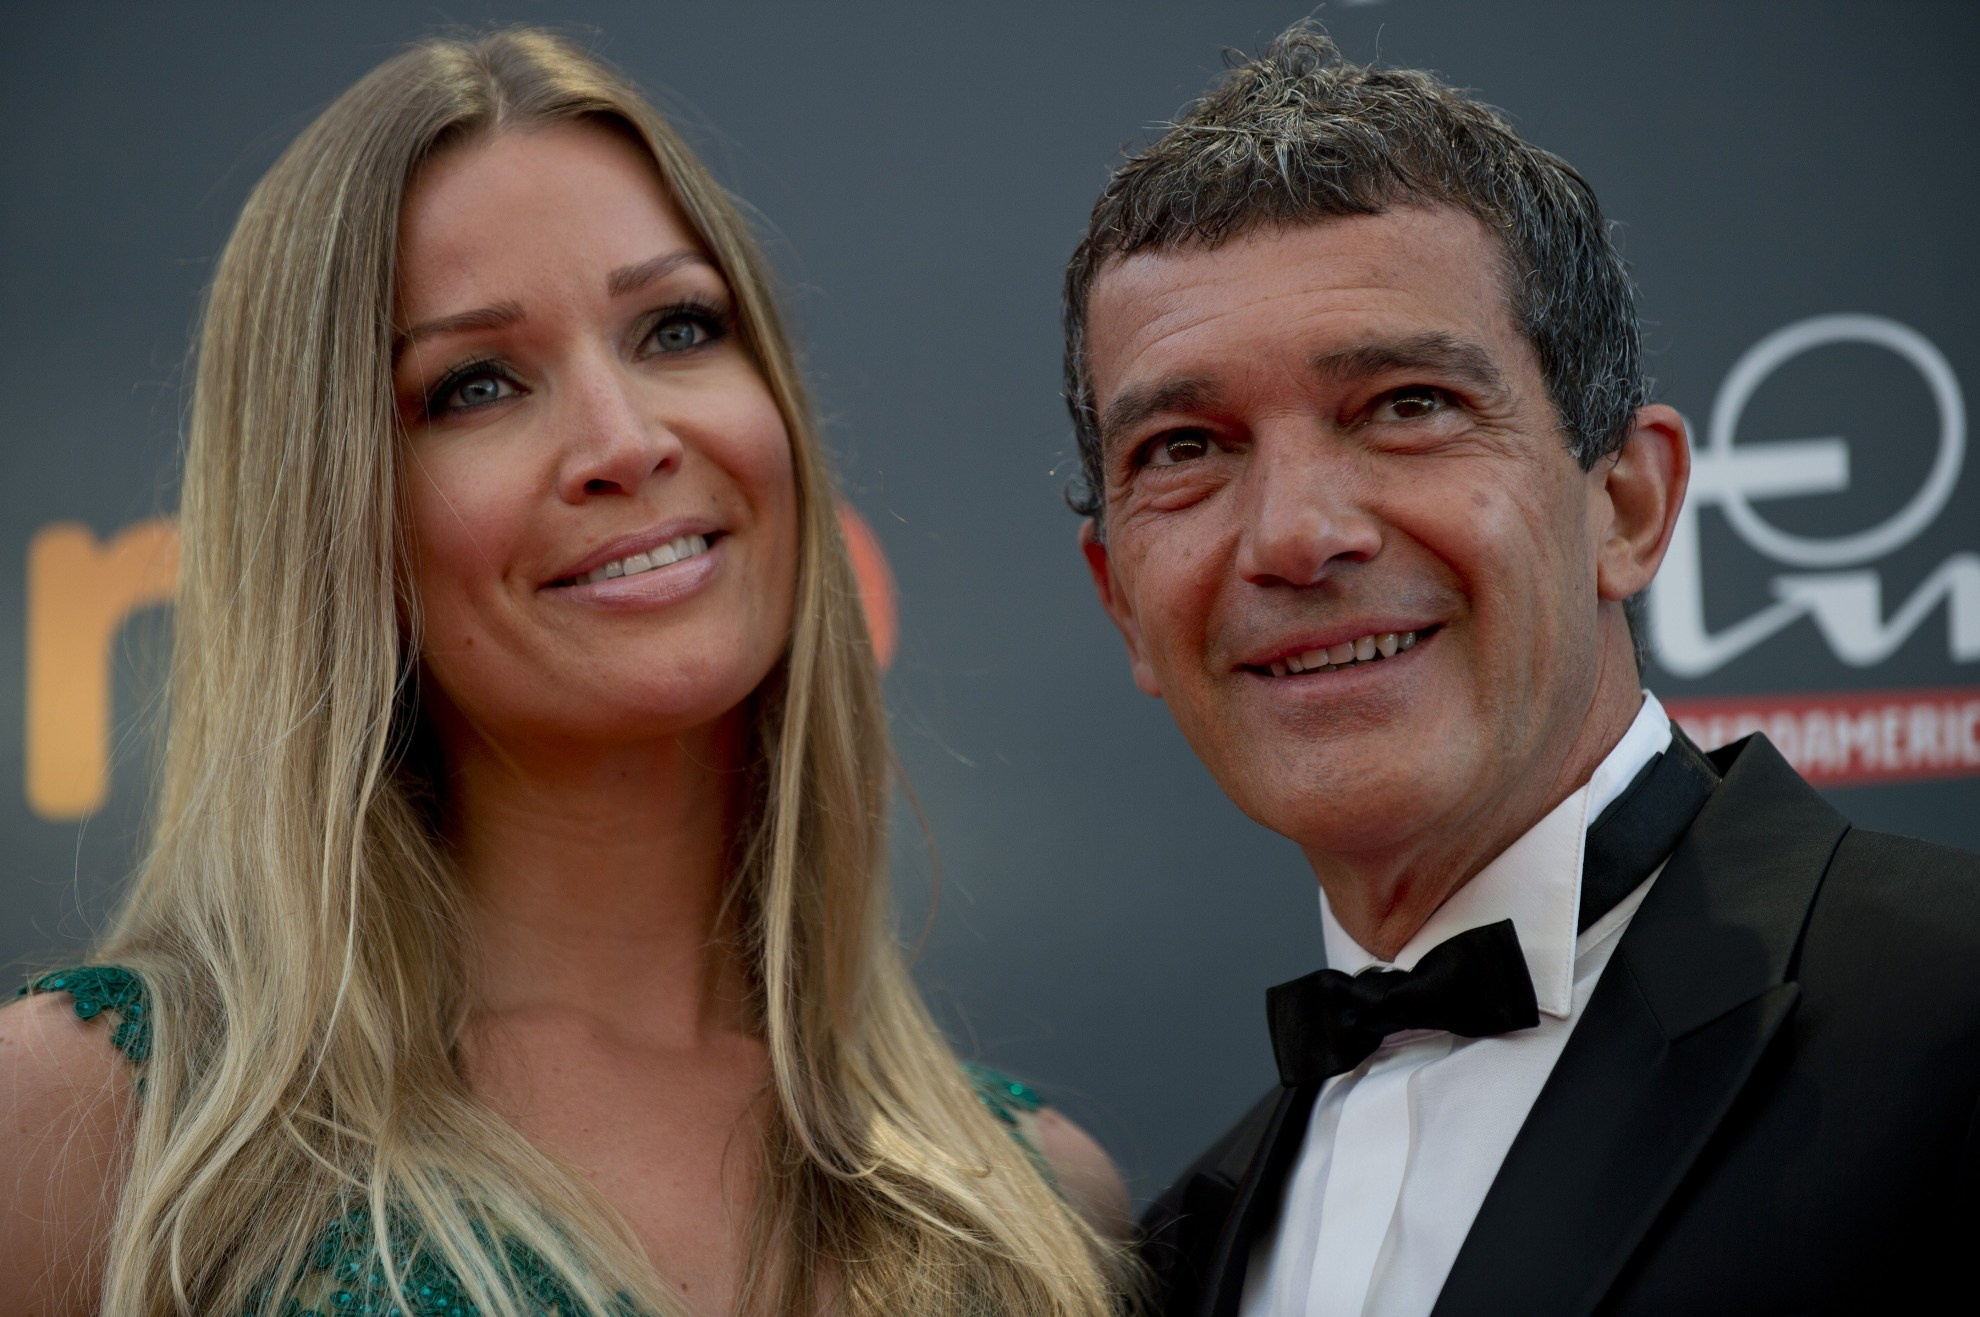 antonio_banderas_r_and_his_girlfriend_nicole_3